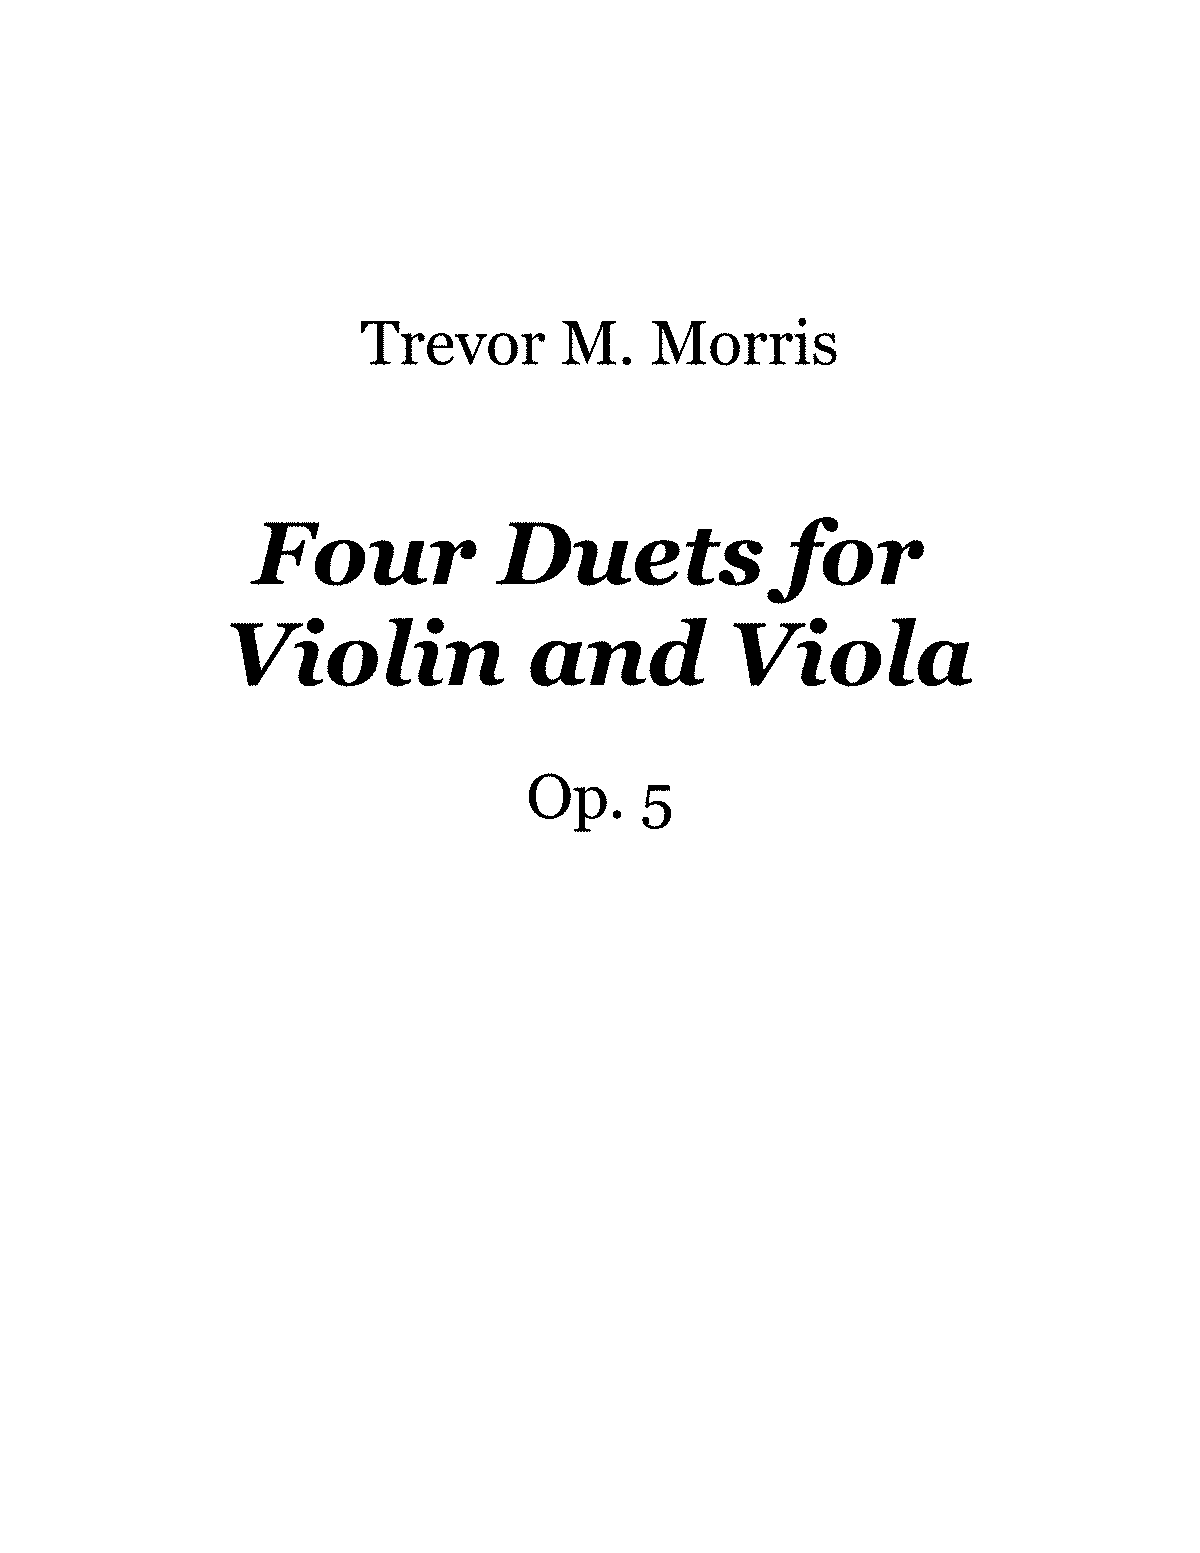 PMLP158804-TMorris Four Duets for Violin and Viola Score.pdf